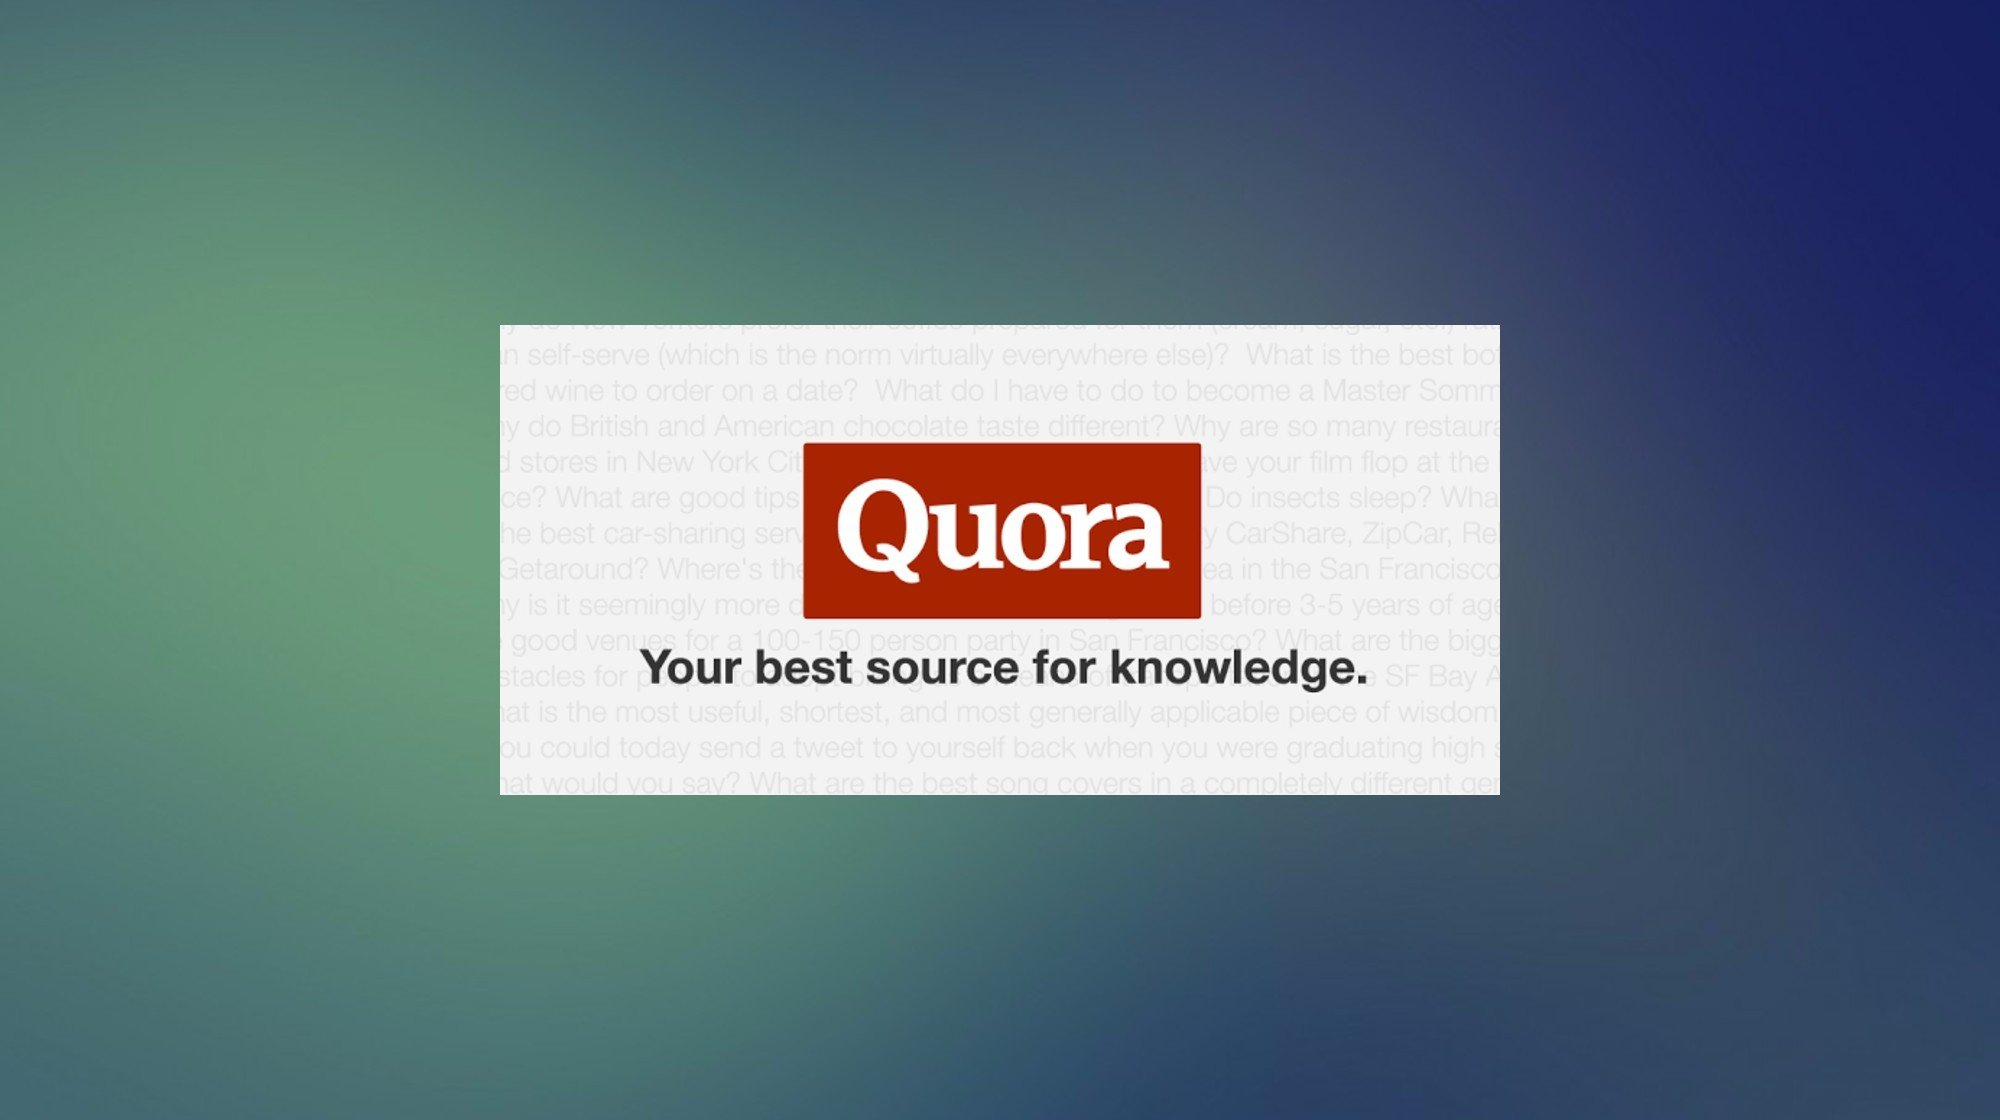 quora, quora hack, quora questions, quora reputation